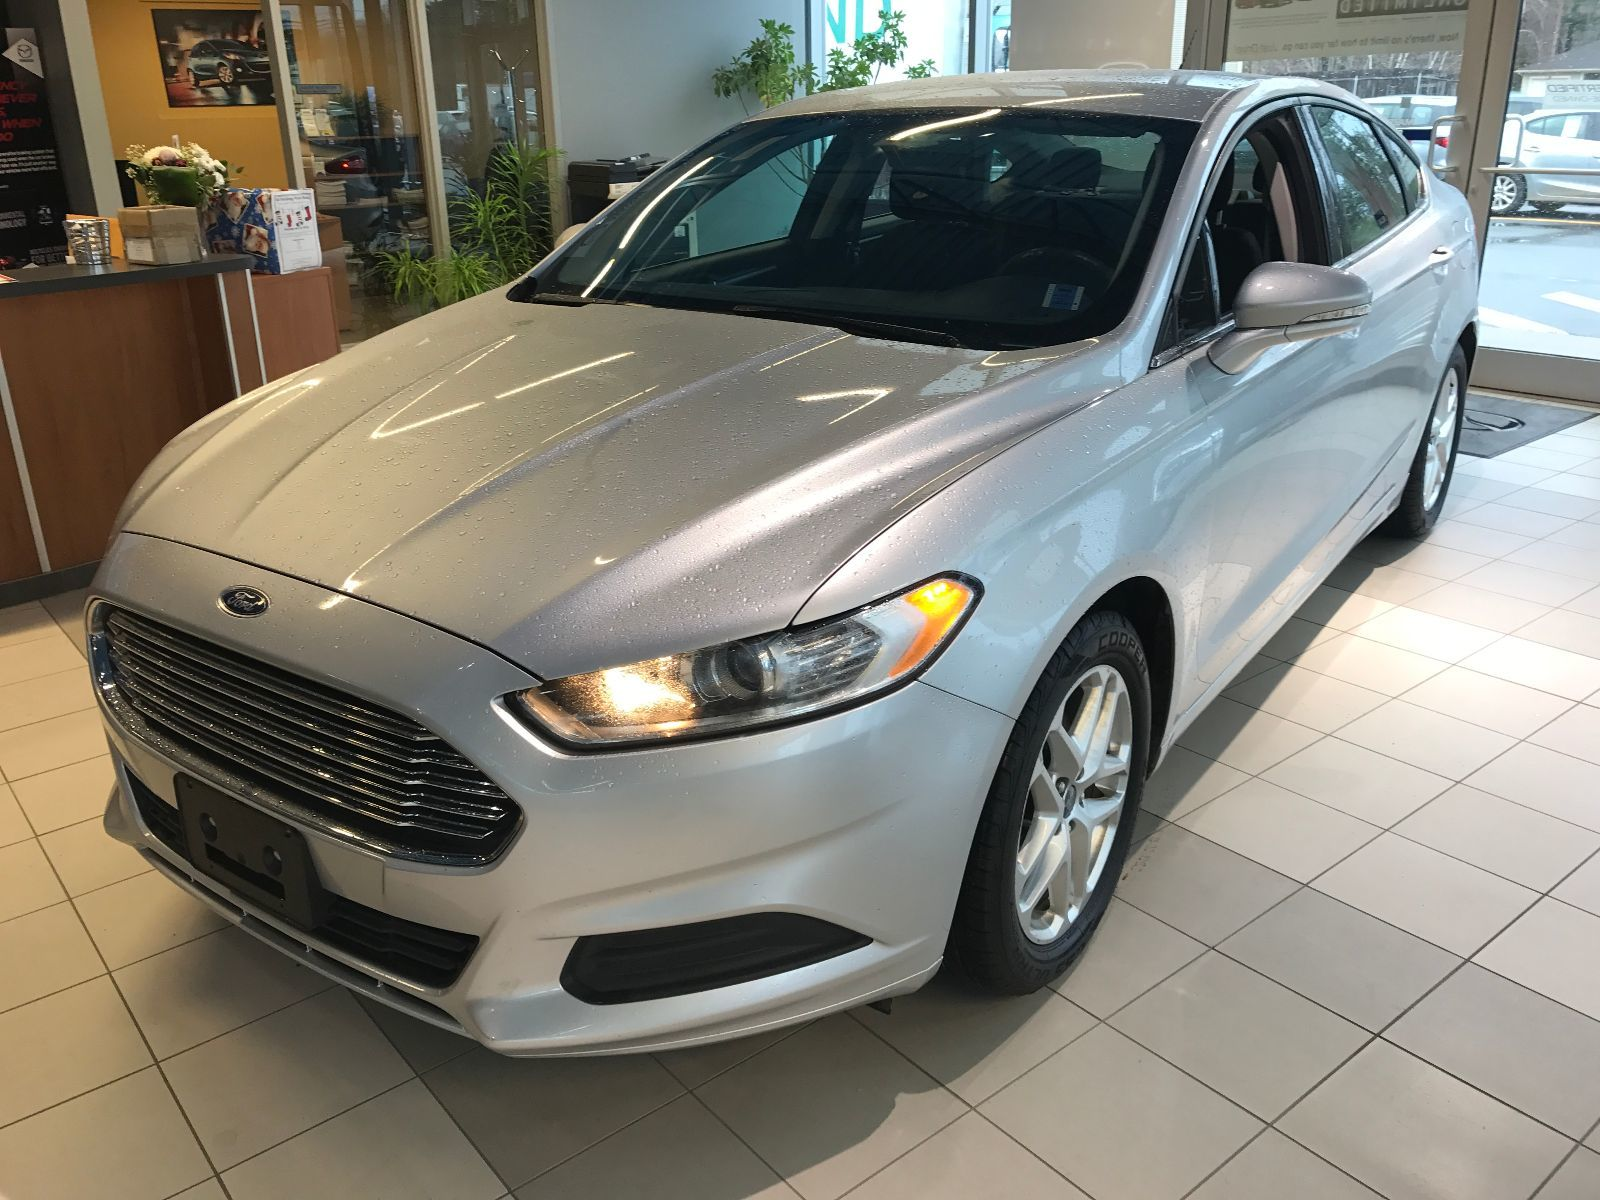 2013 Ford Fusion For Sale >> 902 Auto Sales Used 2013 Ford Fusion For Sale In Dartmouth Km0806a